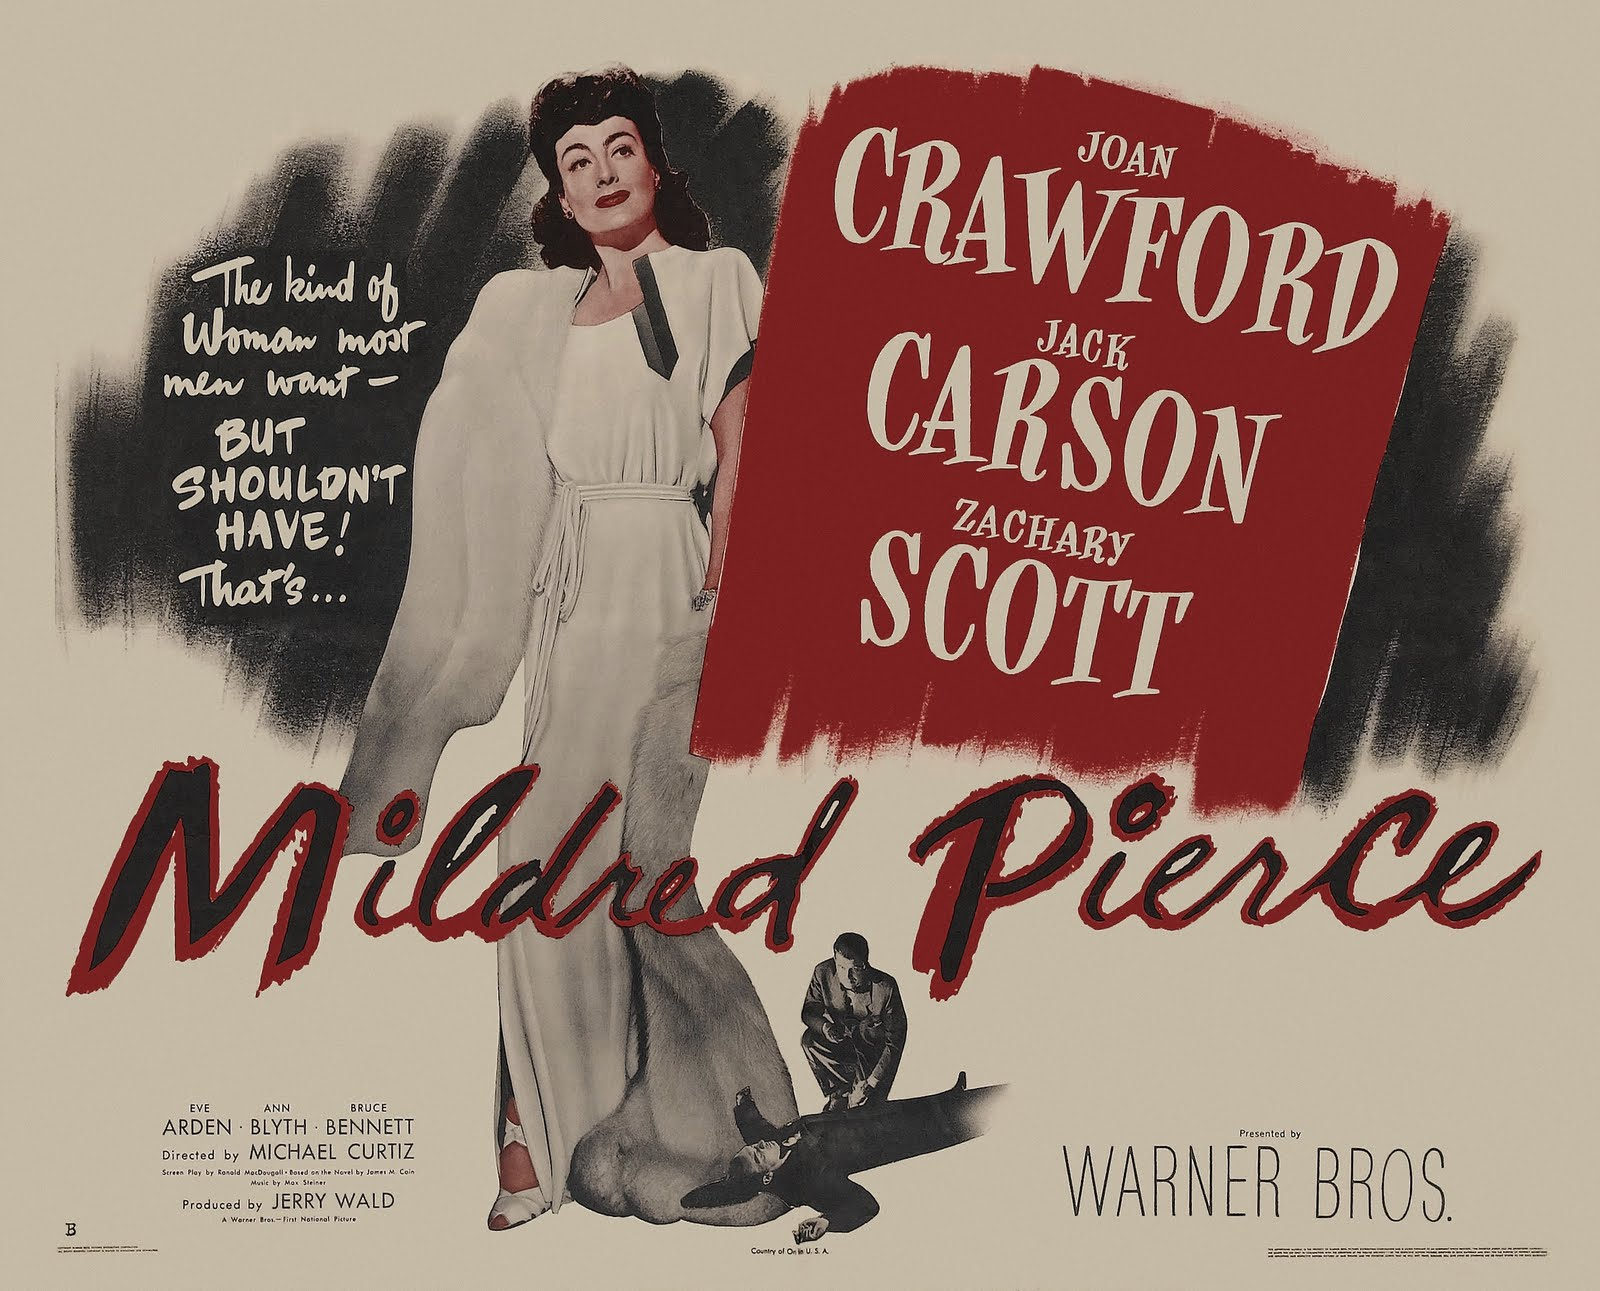 mildred pierce The soundtrack for the five-part hbo miniseries mildred pierce, starring kate winslet, evan rachel wood, and guy pearce, features a nice mix of popular song, big-band, opera, and classical music, all of which are woven throughout longtime coen brothers collaborator carter burwell's plaintive original score set in the 1930s, burwell's lovely, emotive, piano-led opening title forms the.